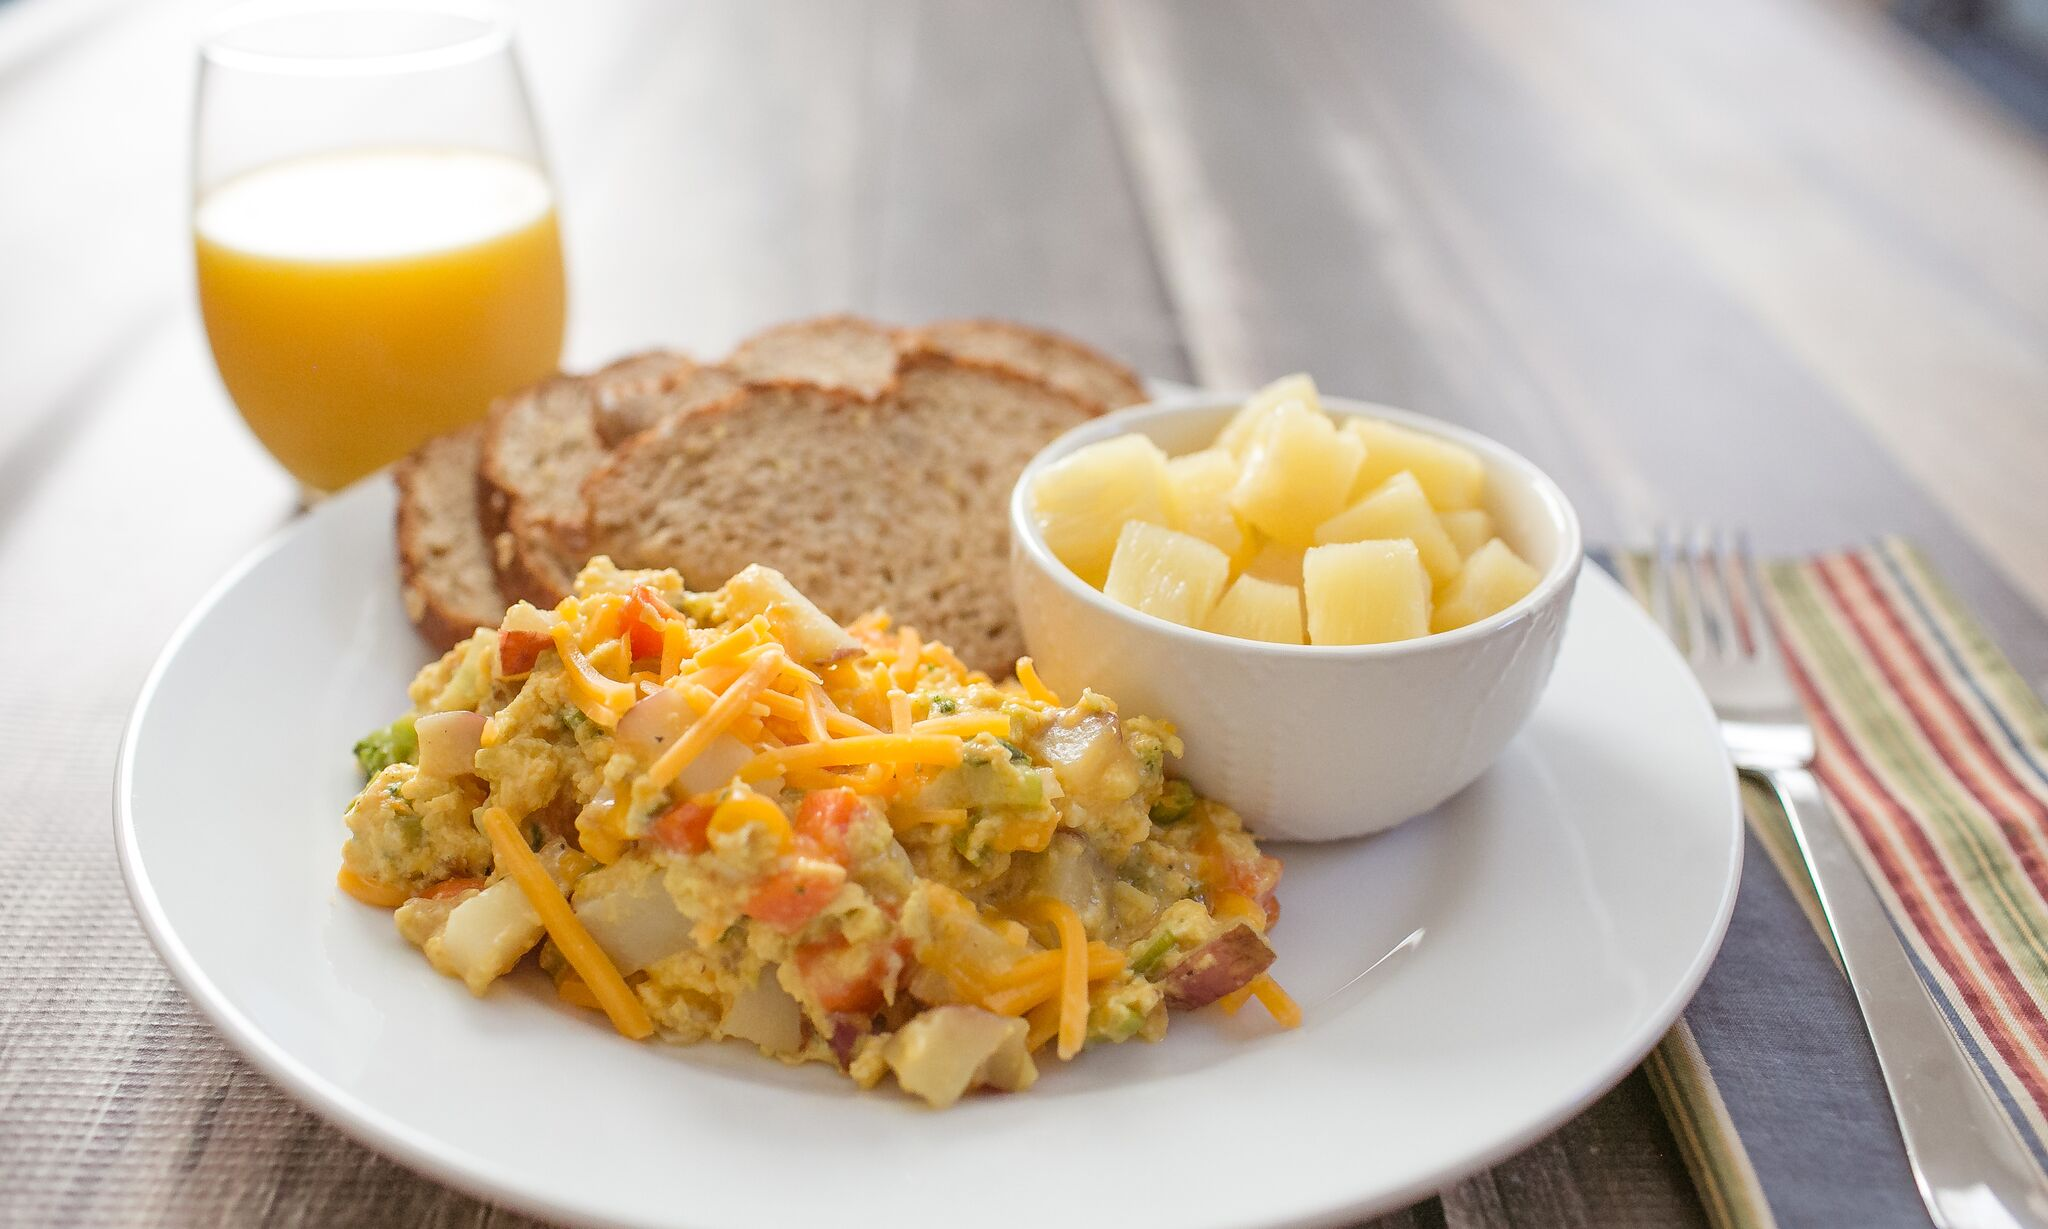 Serve this veggie egg scramble alongside some toast and fresh fruit for a delicious breakfast